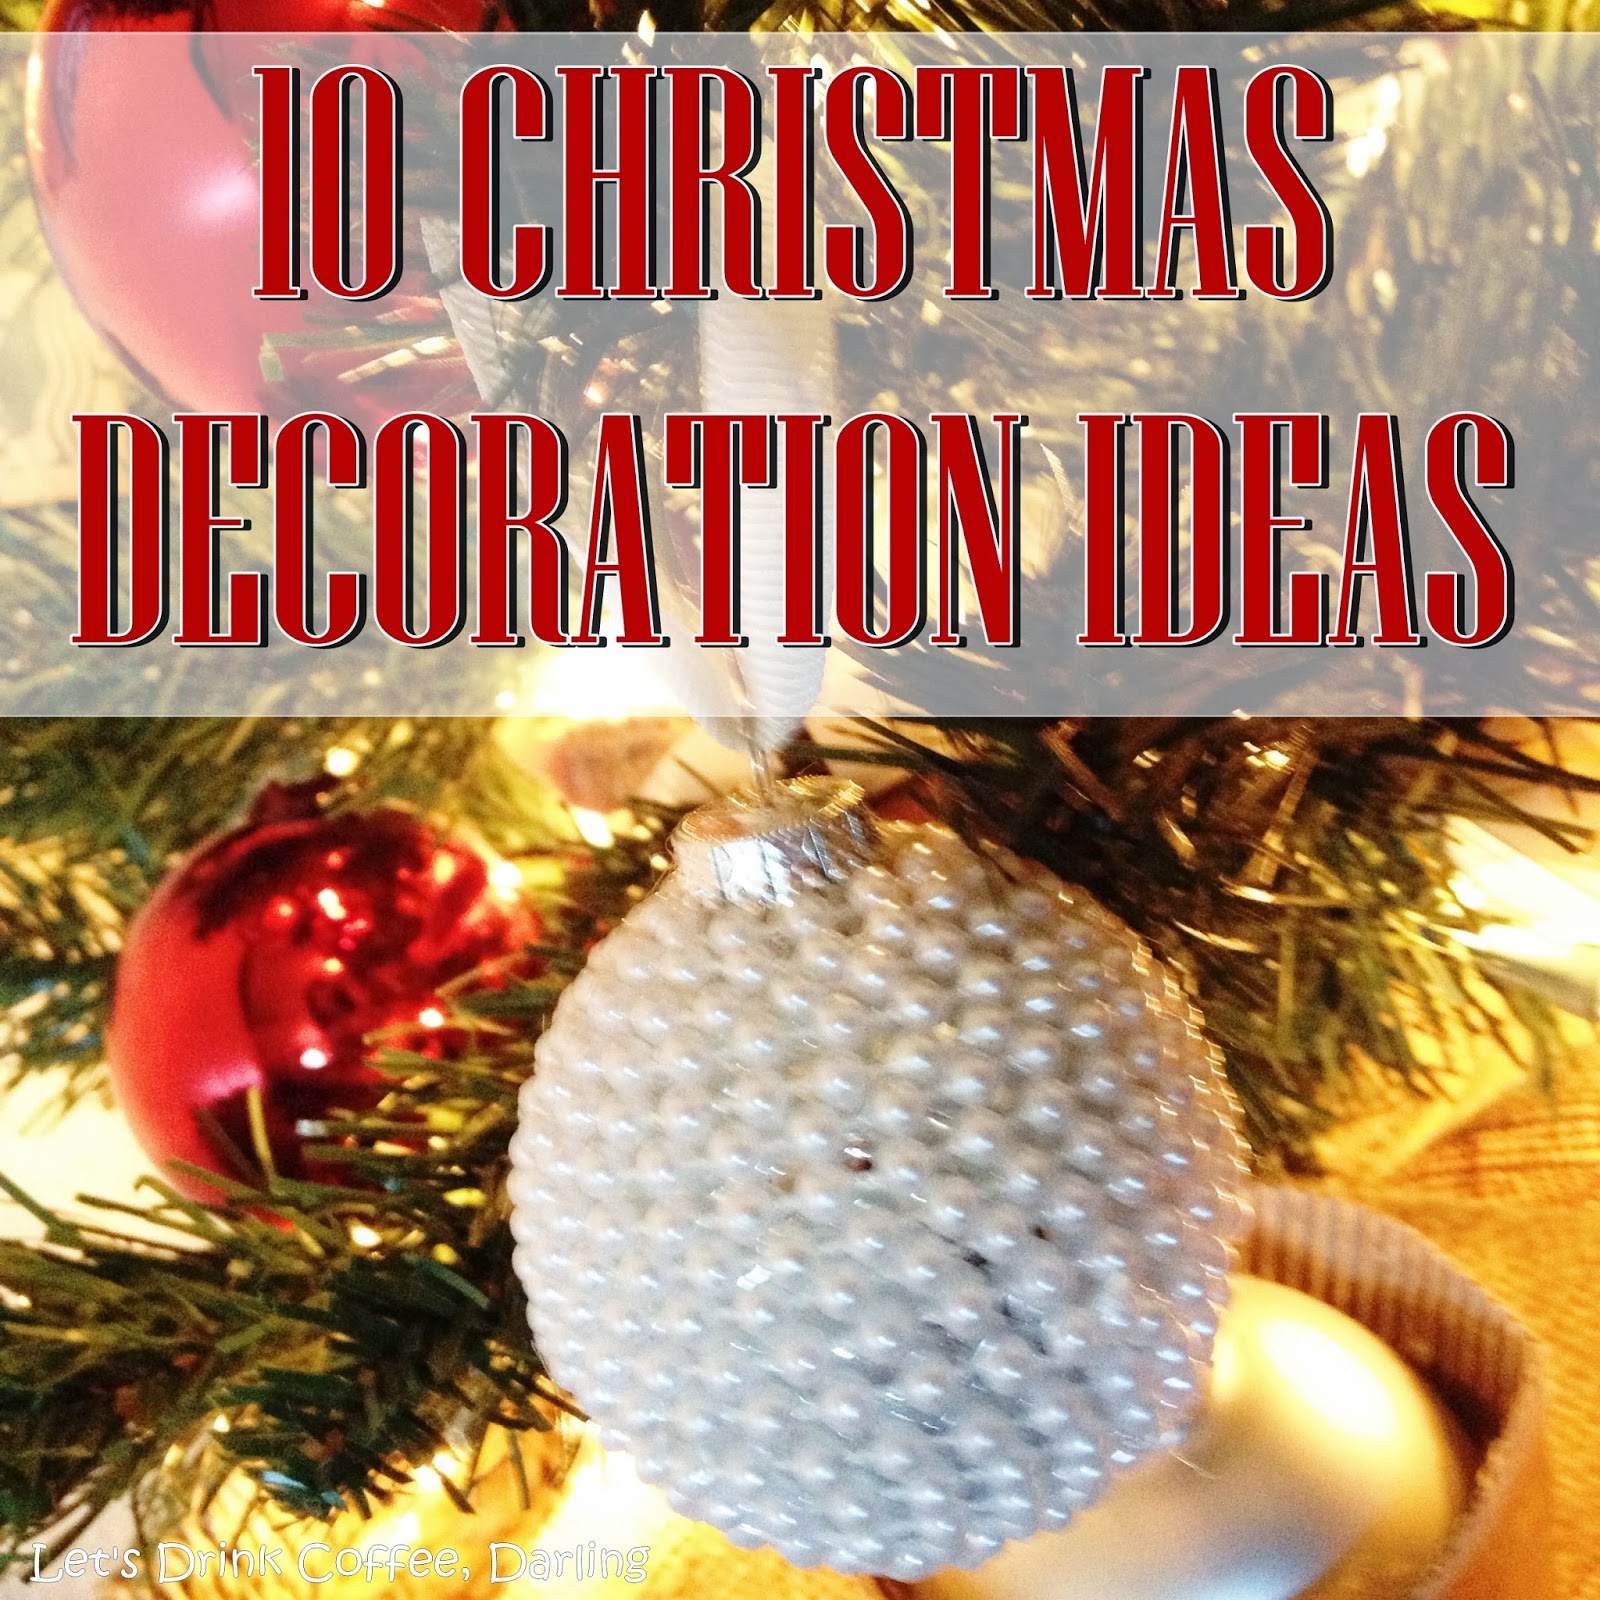 Let39;s Drink Coffee, Darling: 10 DIY Christmas Decoration Ideas